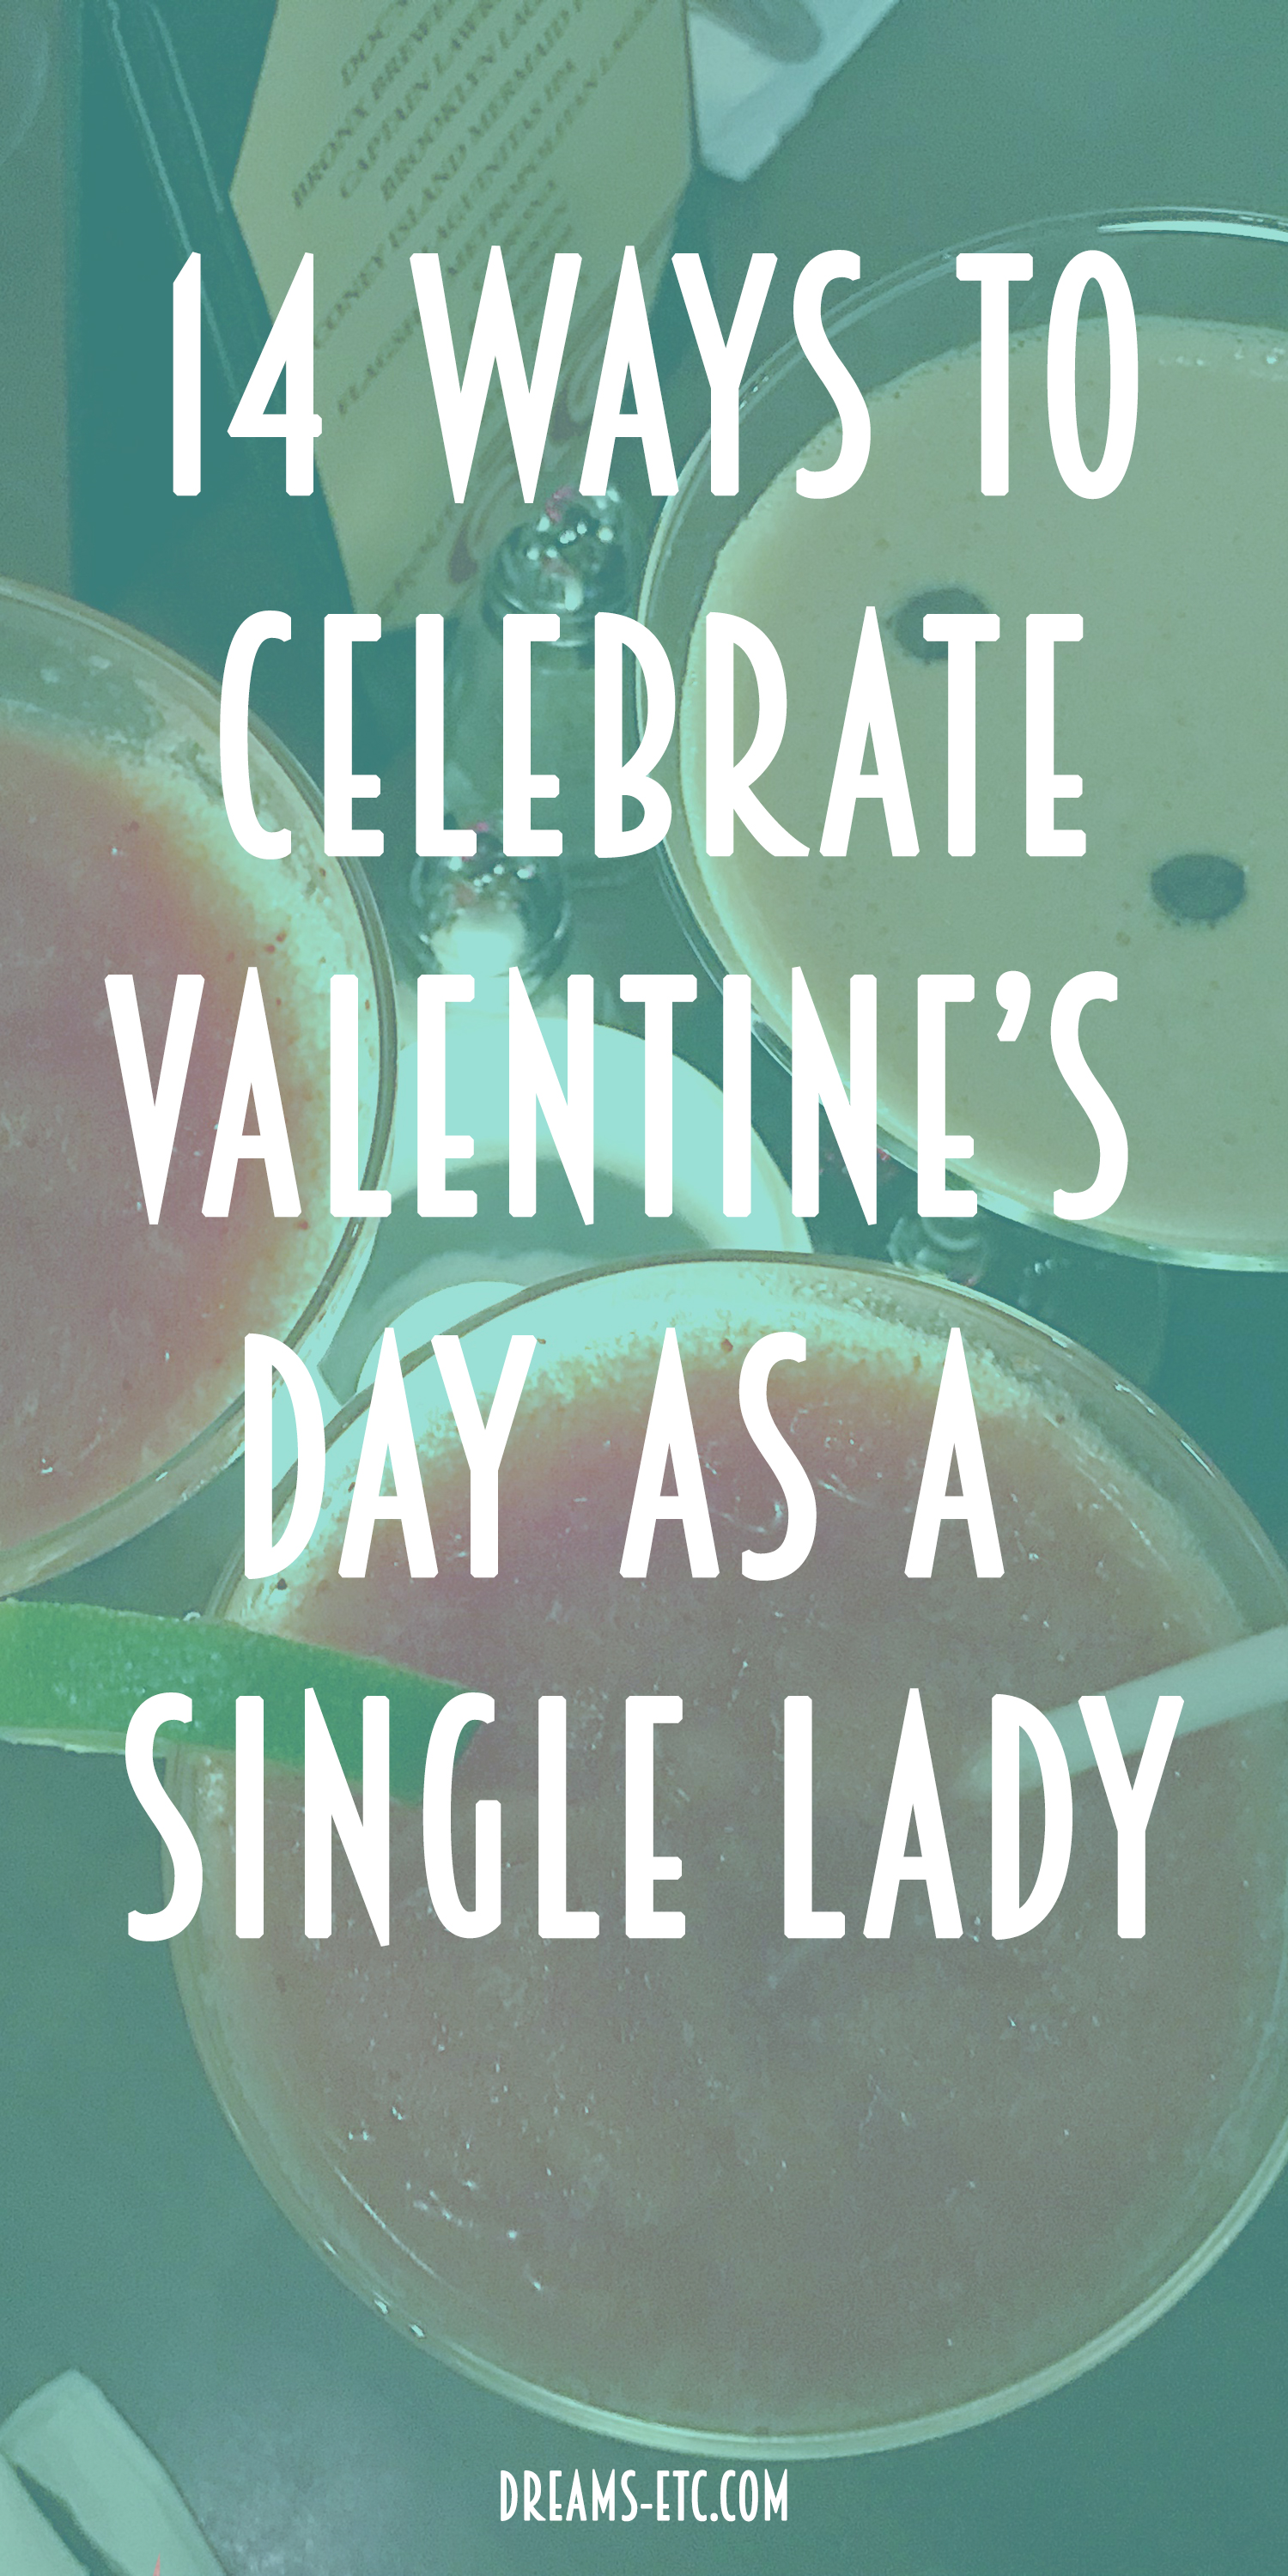 Looking ahead to spending Valentine's Day alone? You're going to have the BEST time!! Here are 14 ways to CELEBRATE Valentine's Day as a single lady! // dreams-etc.com